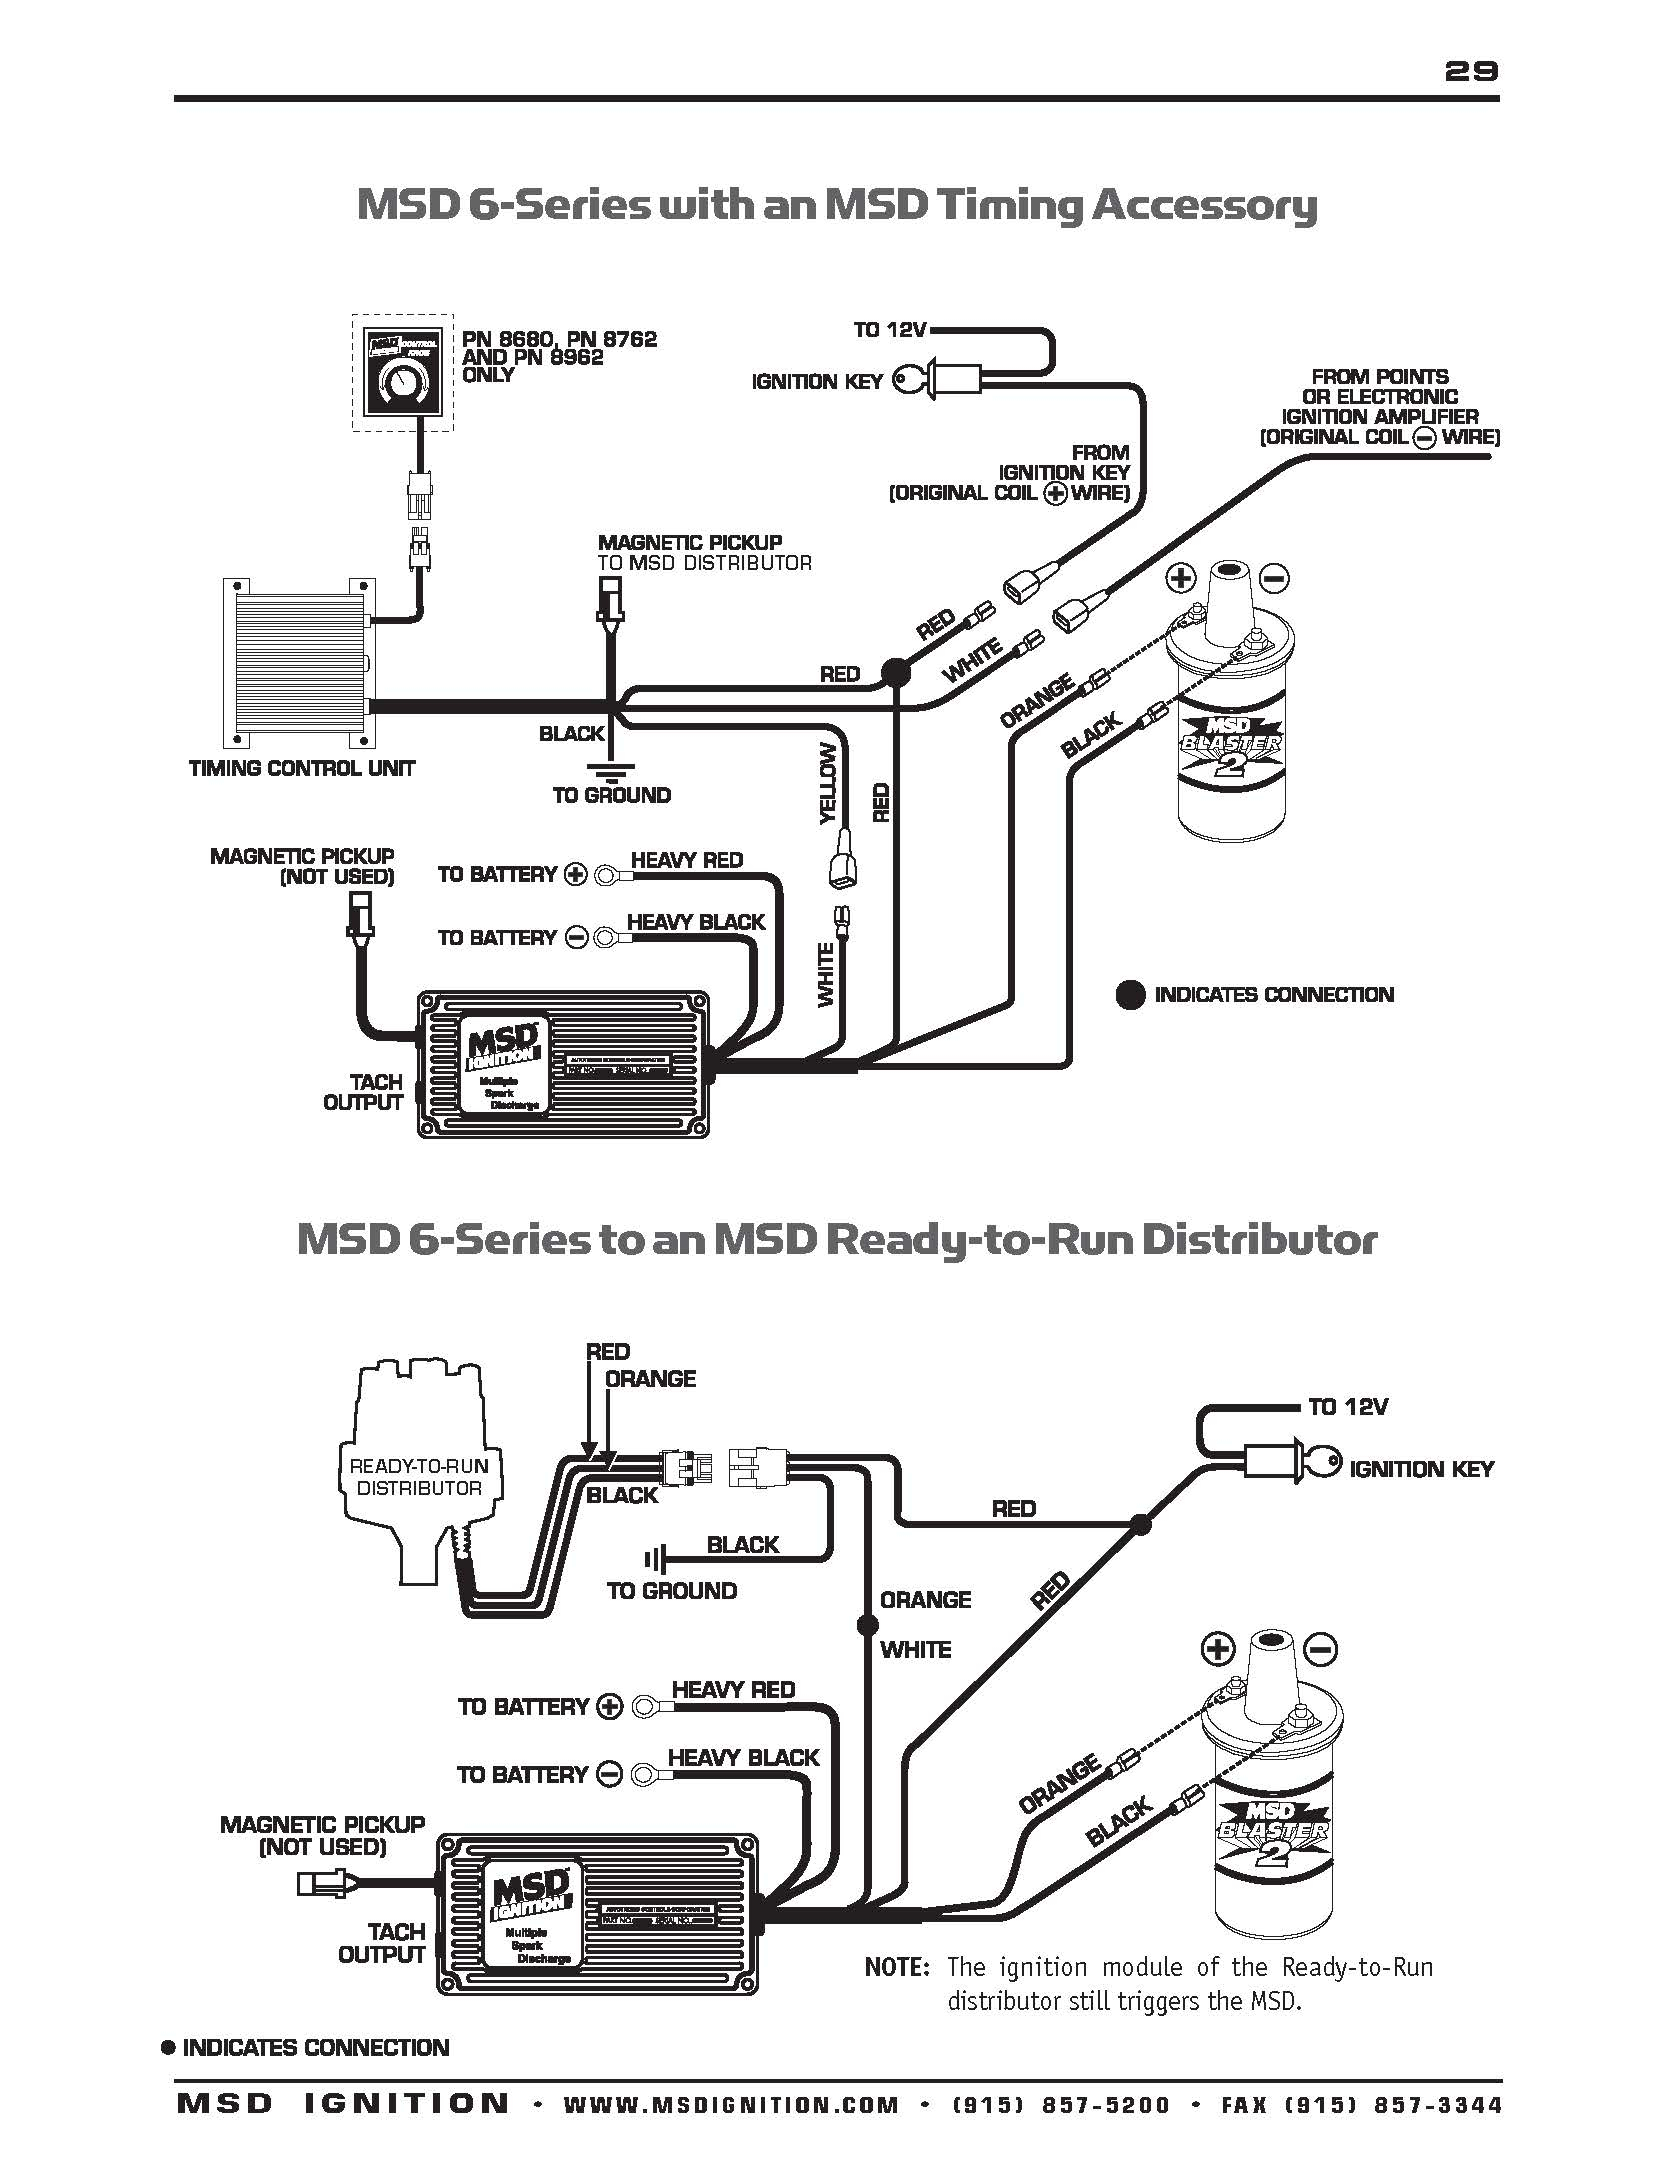 msd 6al 2 wiring diagram Collection-msd 6al 2 wiring Download Msd Ignition Wiring Diagrams With Distributor Diagram To 9 16-n